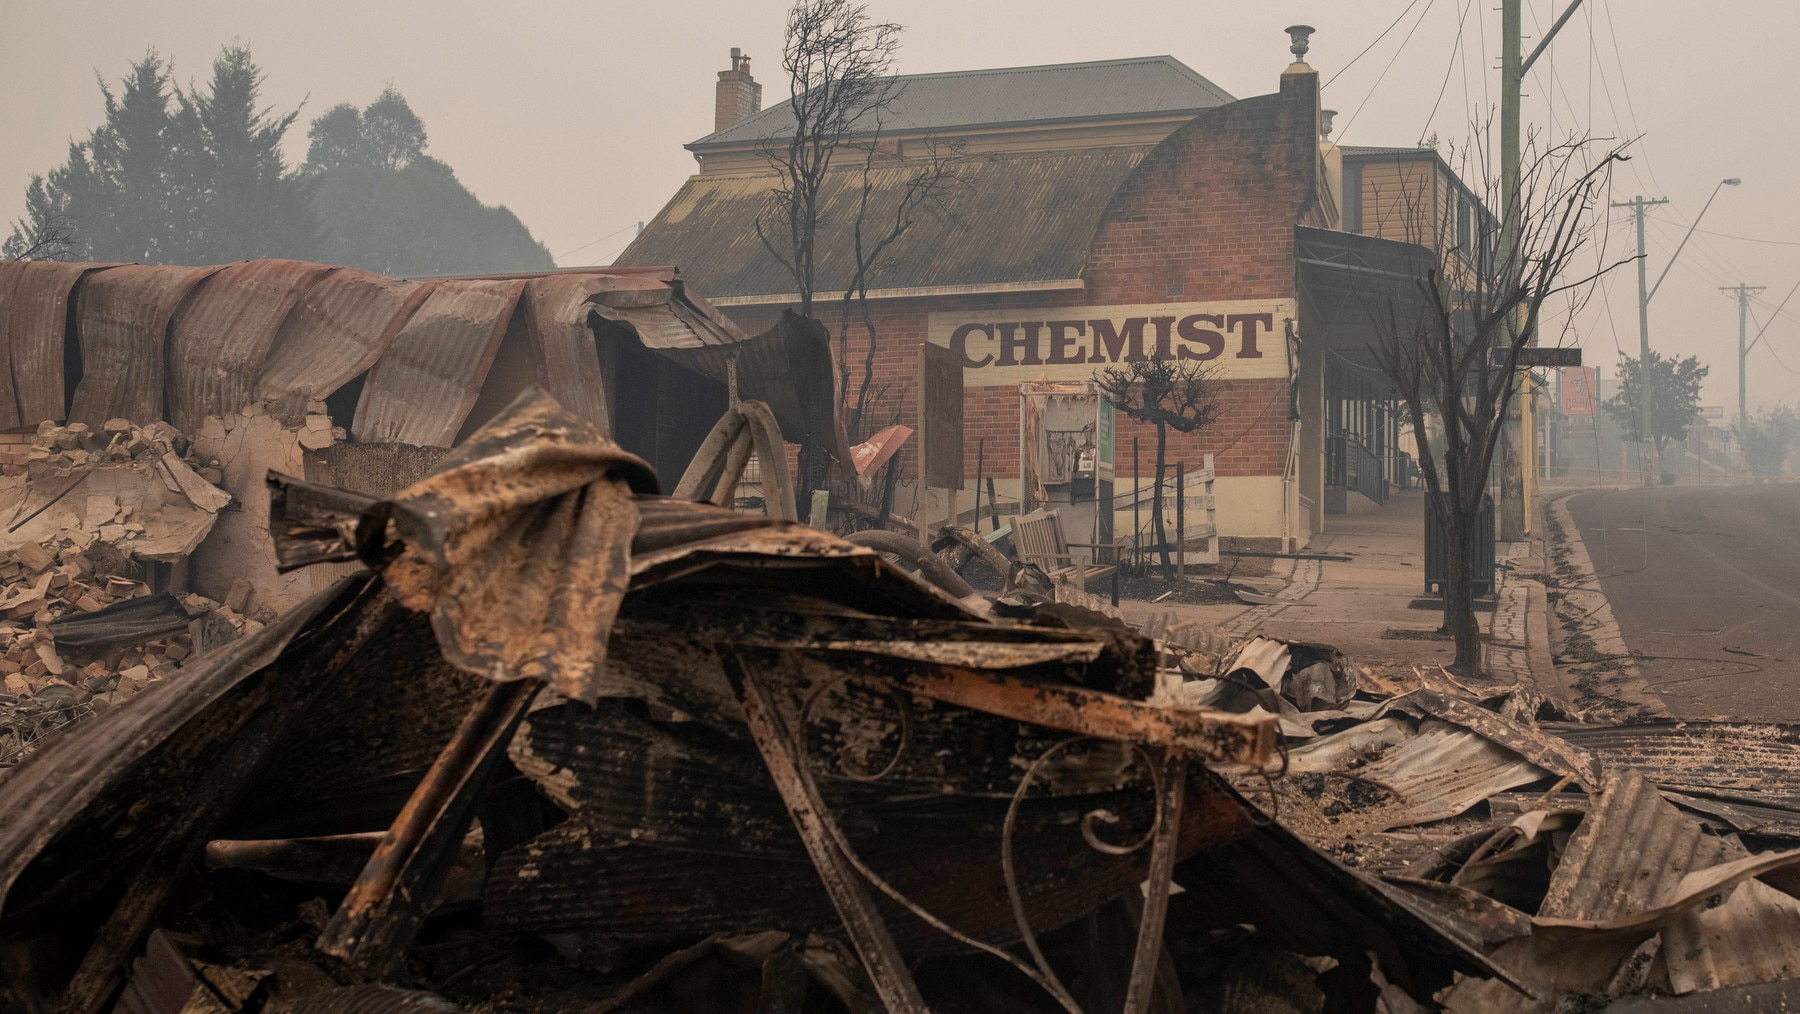 Destroyed buildings are seen in Cobargo, NSW, Wednesday, January 1, 2020. Several bushfire-ravaged communities in NSW have greeted the new year under immediate threat. (AAP Image/Sean Davey) NO ARCHIVING